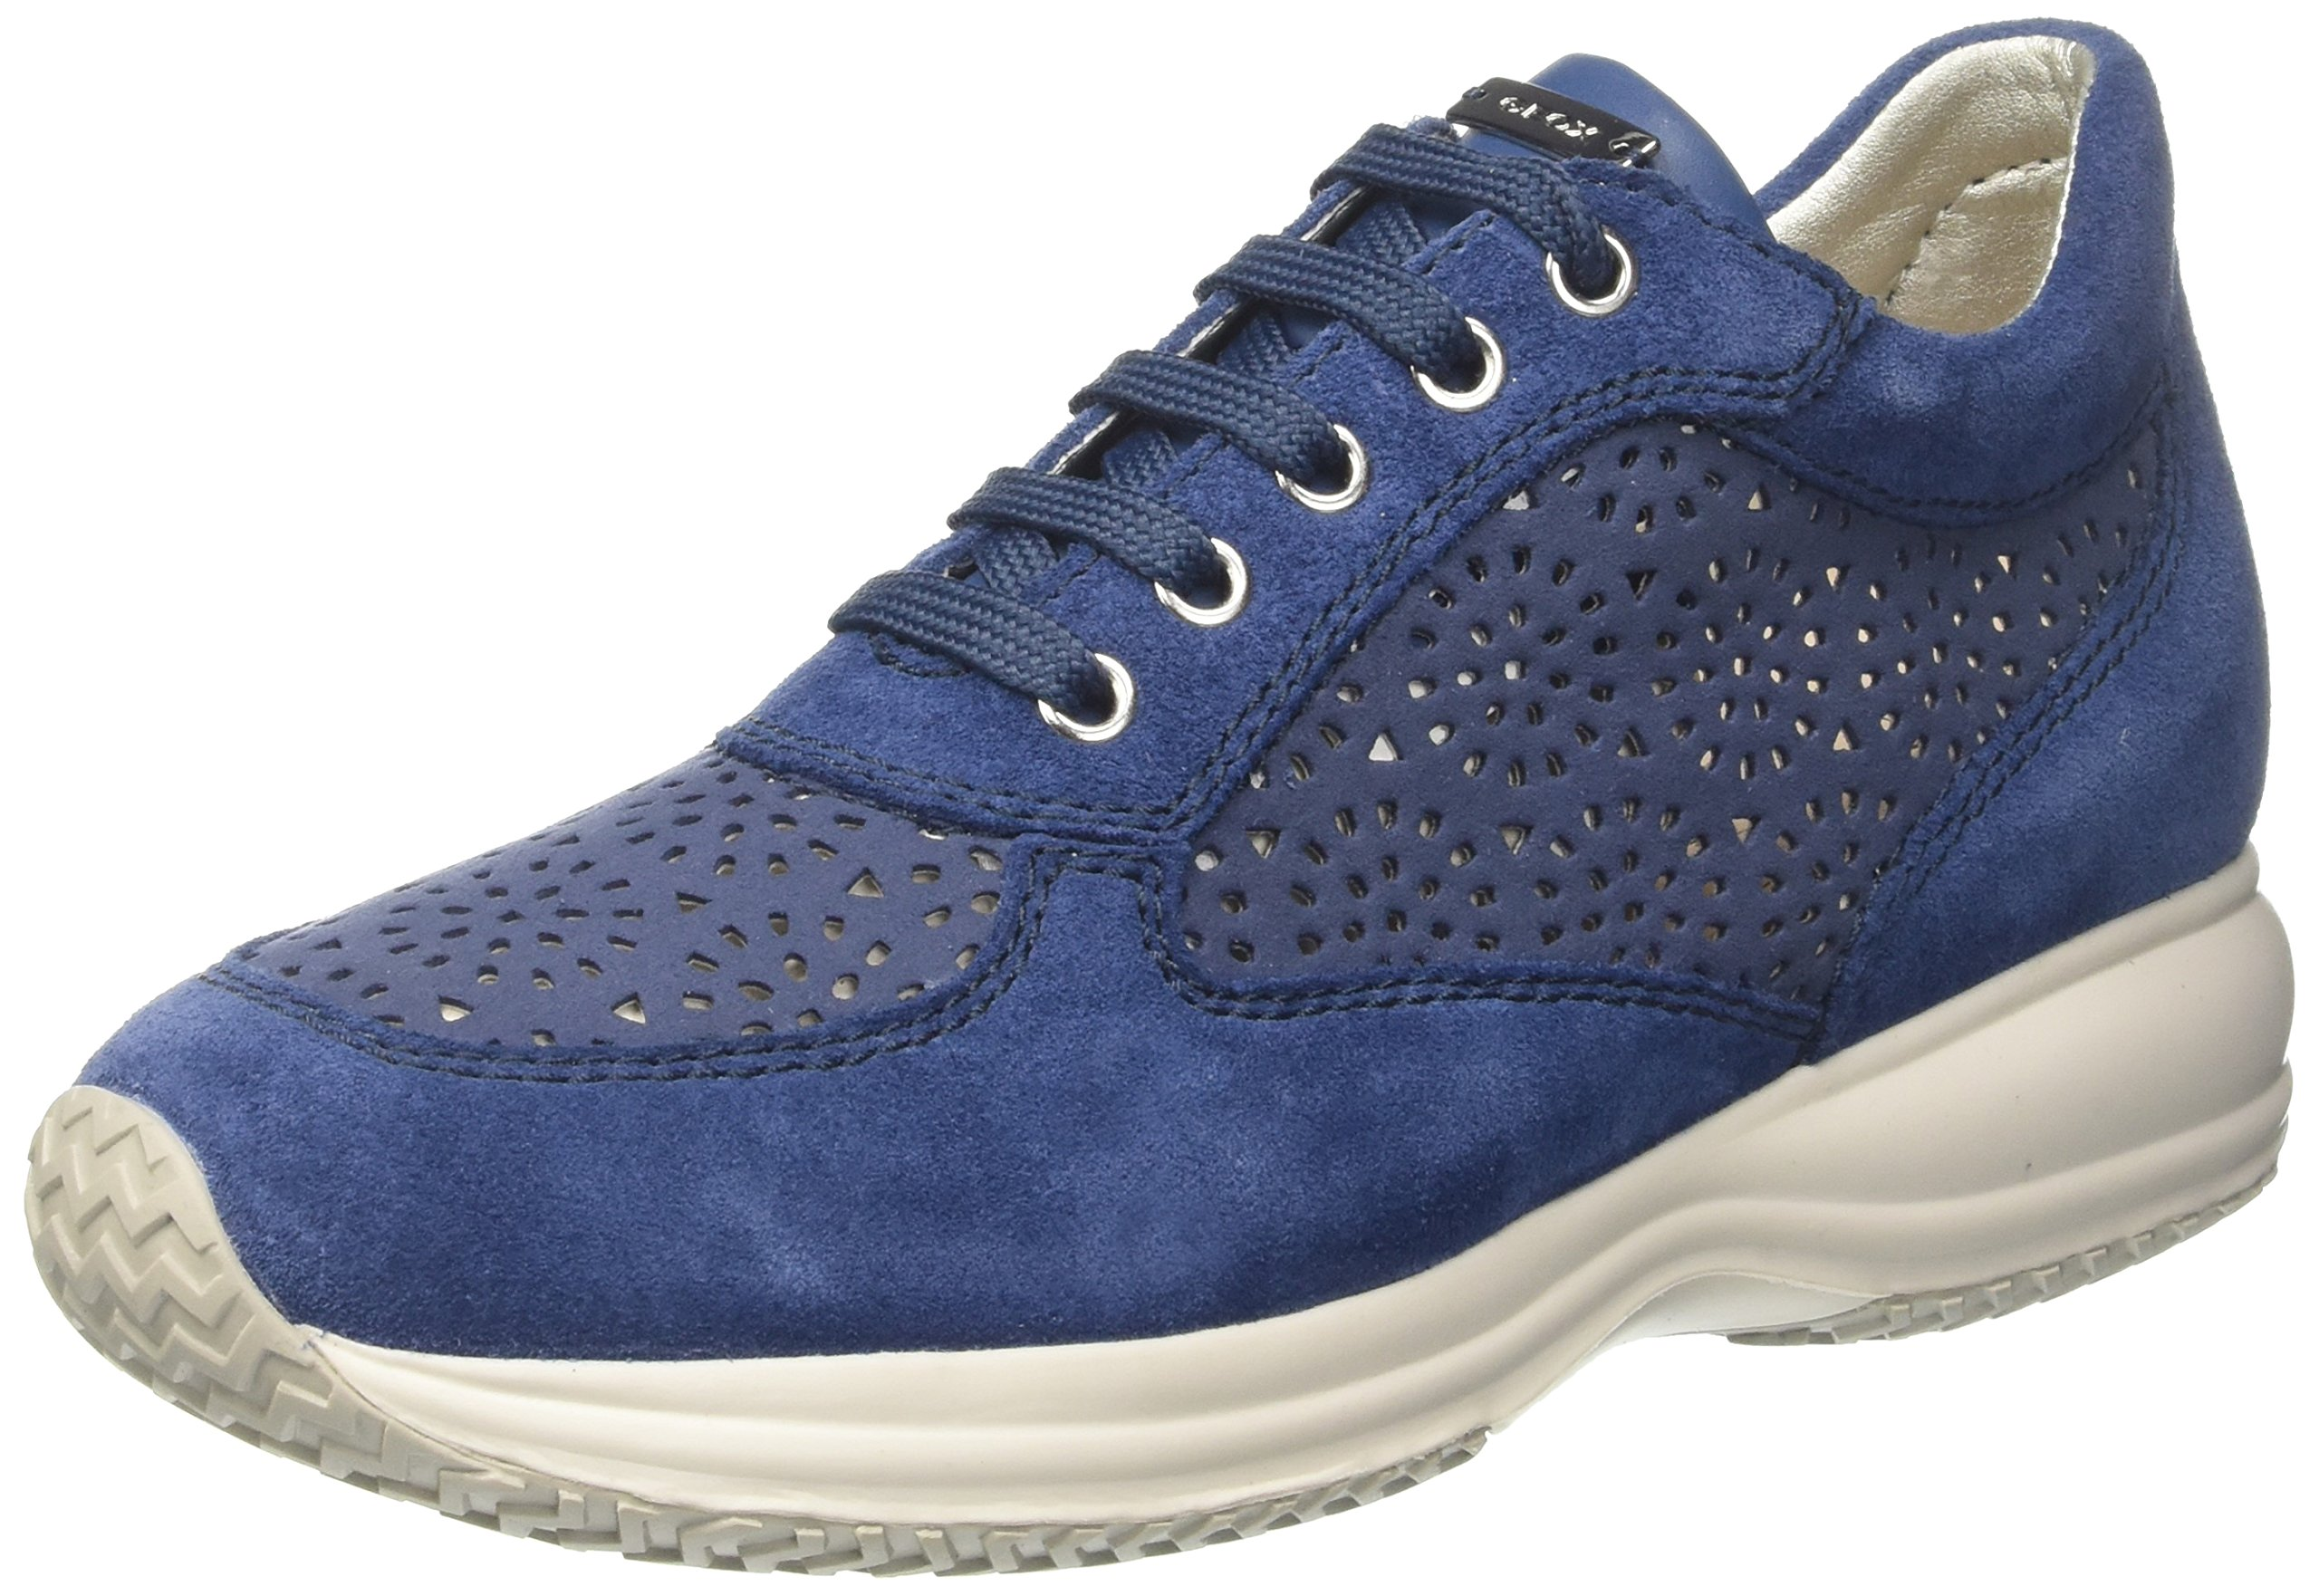 Basses Eu Geox ASneakers D FemmeBleudenim39 Happy R4jq35AL